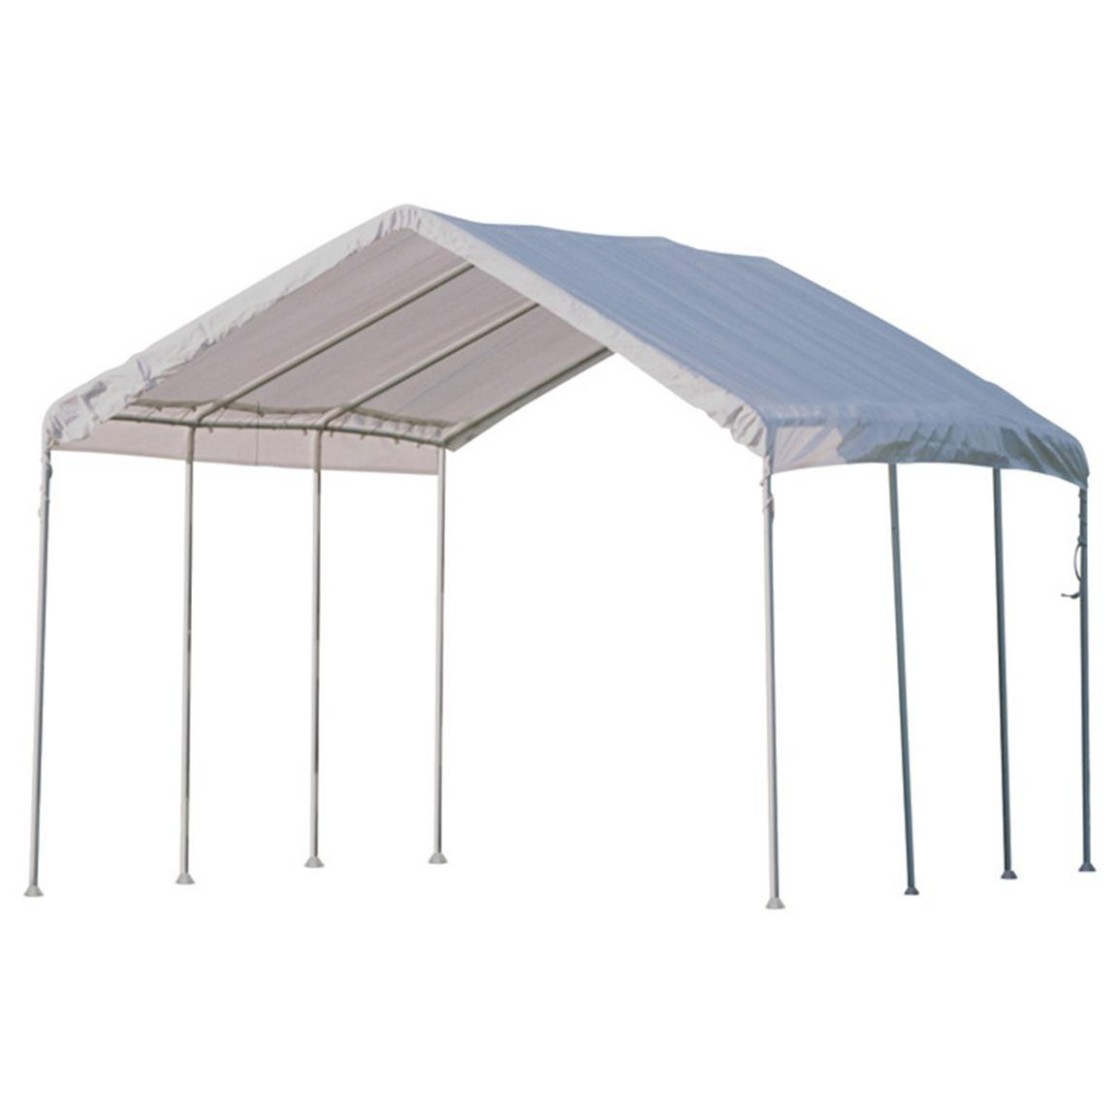 1517596510-shelterlogic-portable-garage-canopy-carport-10-10×10-carport.jpg